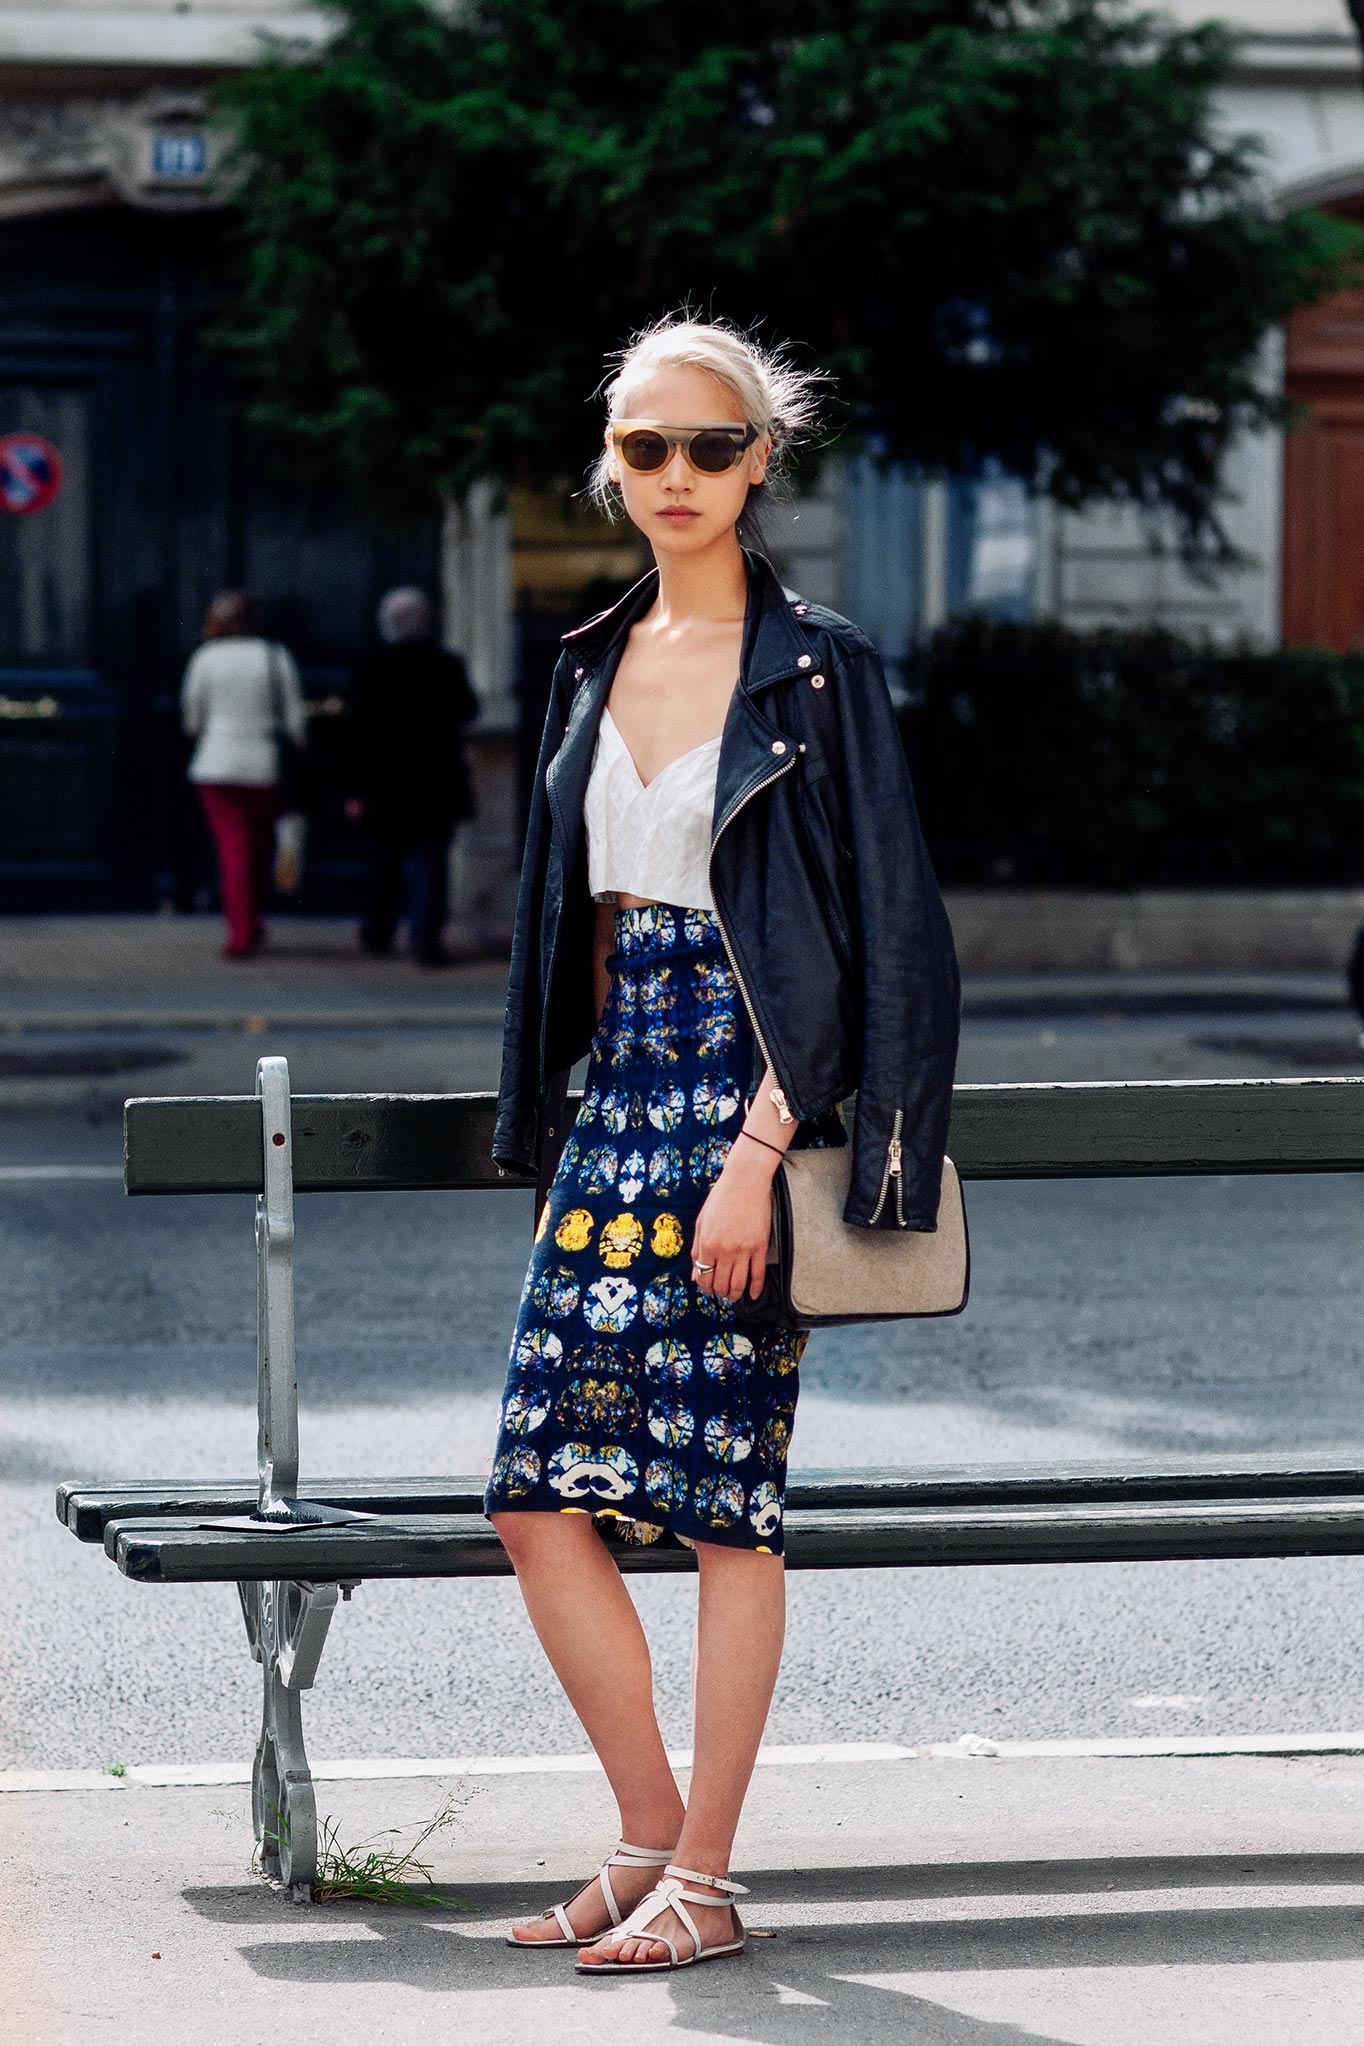 Soo Joo Park at Paris Fashion Week